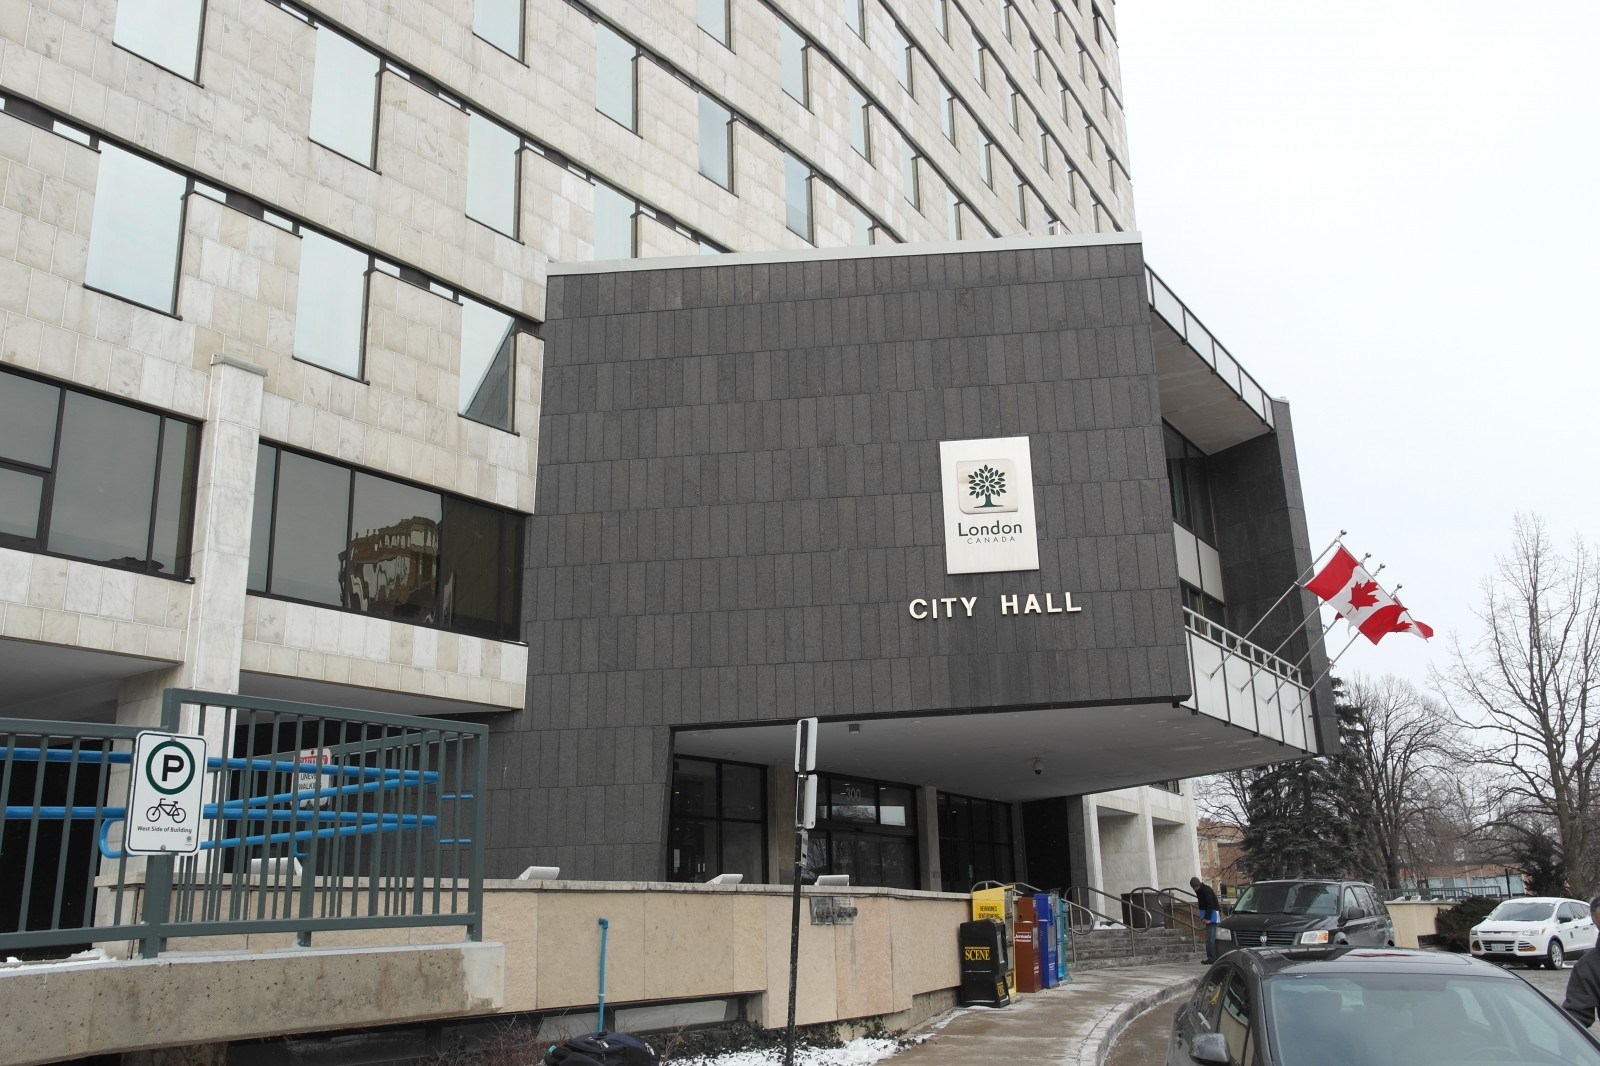 City of London aims for 2.9% annual tax increases in multi-year budget draft